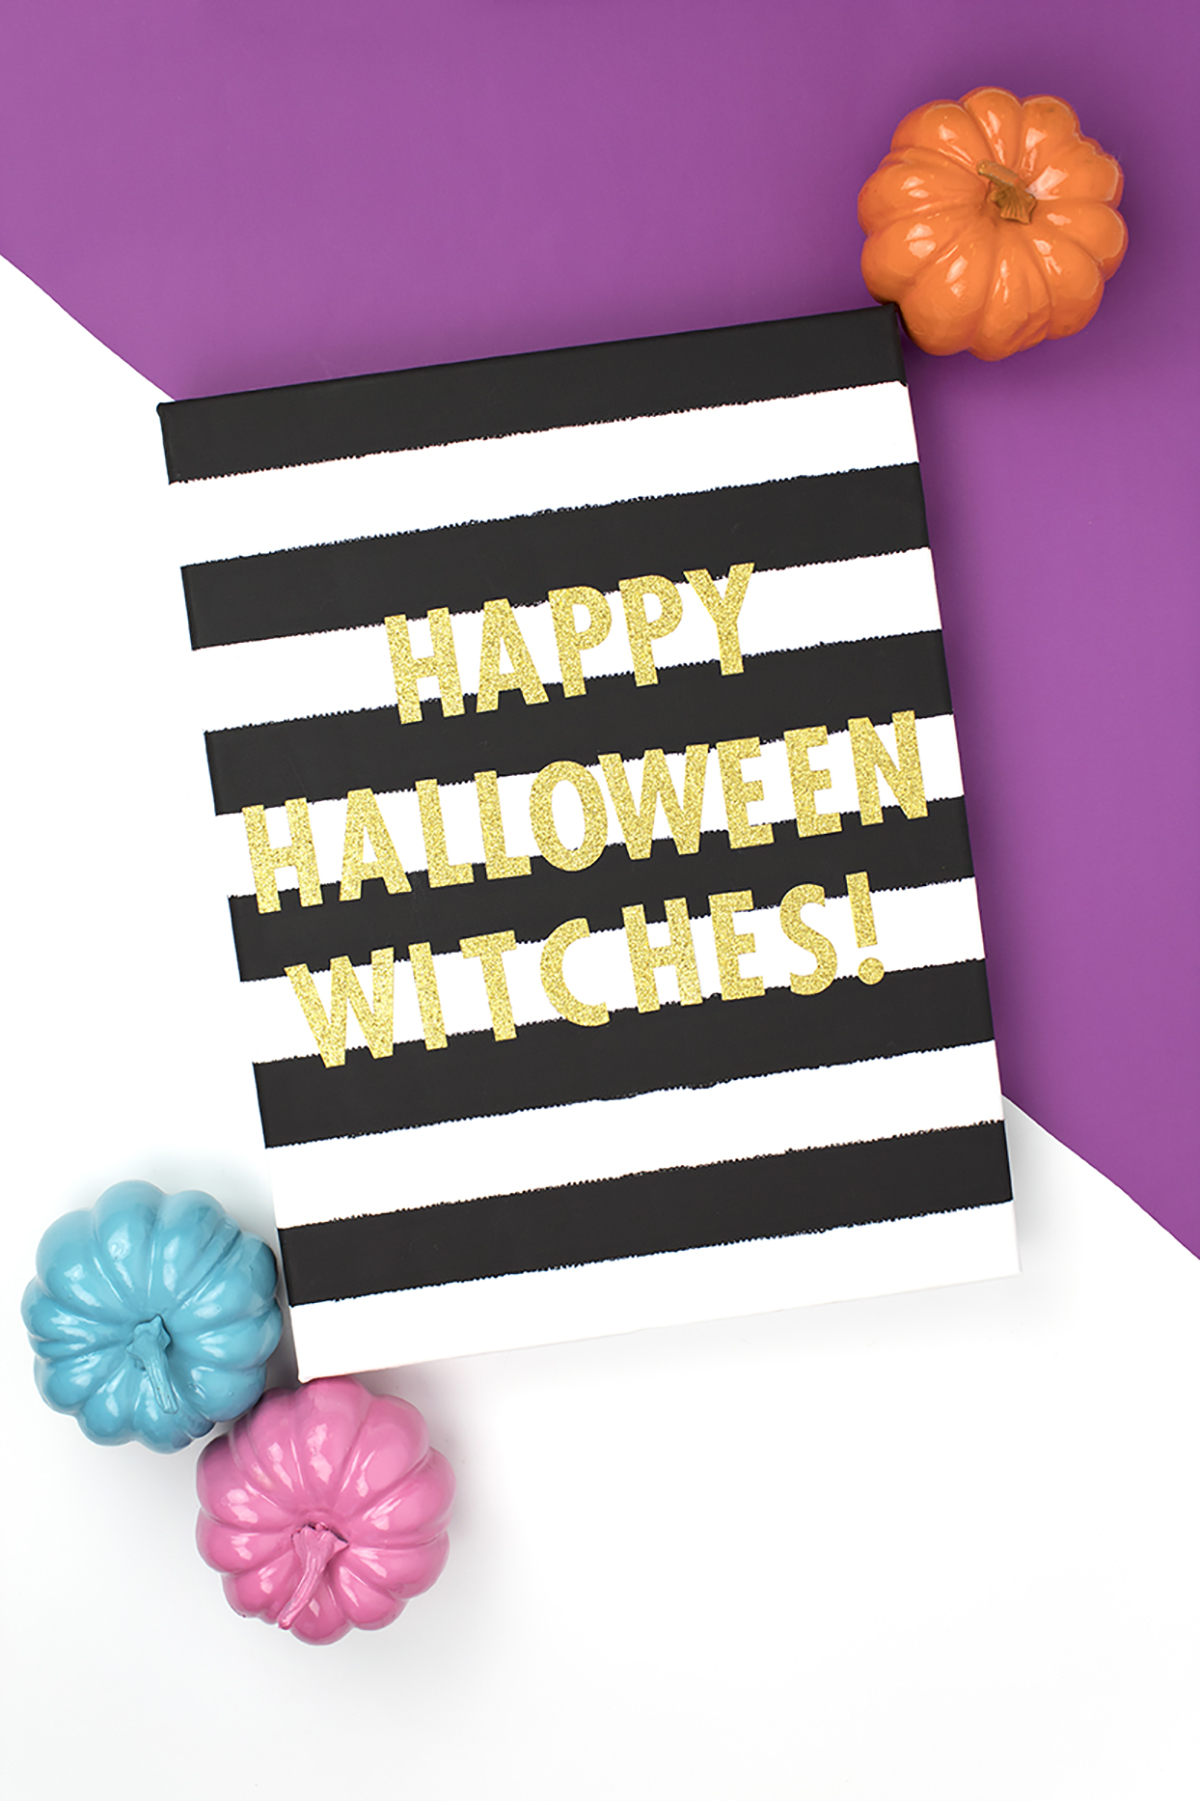 Looking for a slightly creepy, slightly cute way to decorate for Halloween? You've got to see this striped sign! Click for the full DIY. #halloweencrafts #halloweenart #diyhalloween